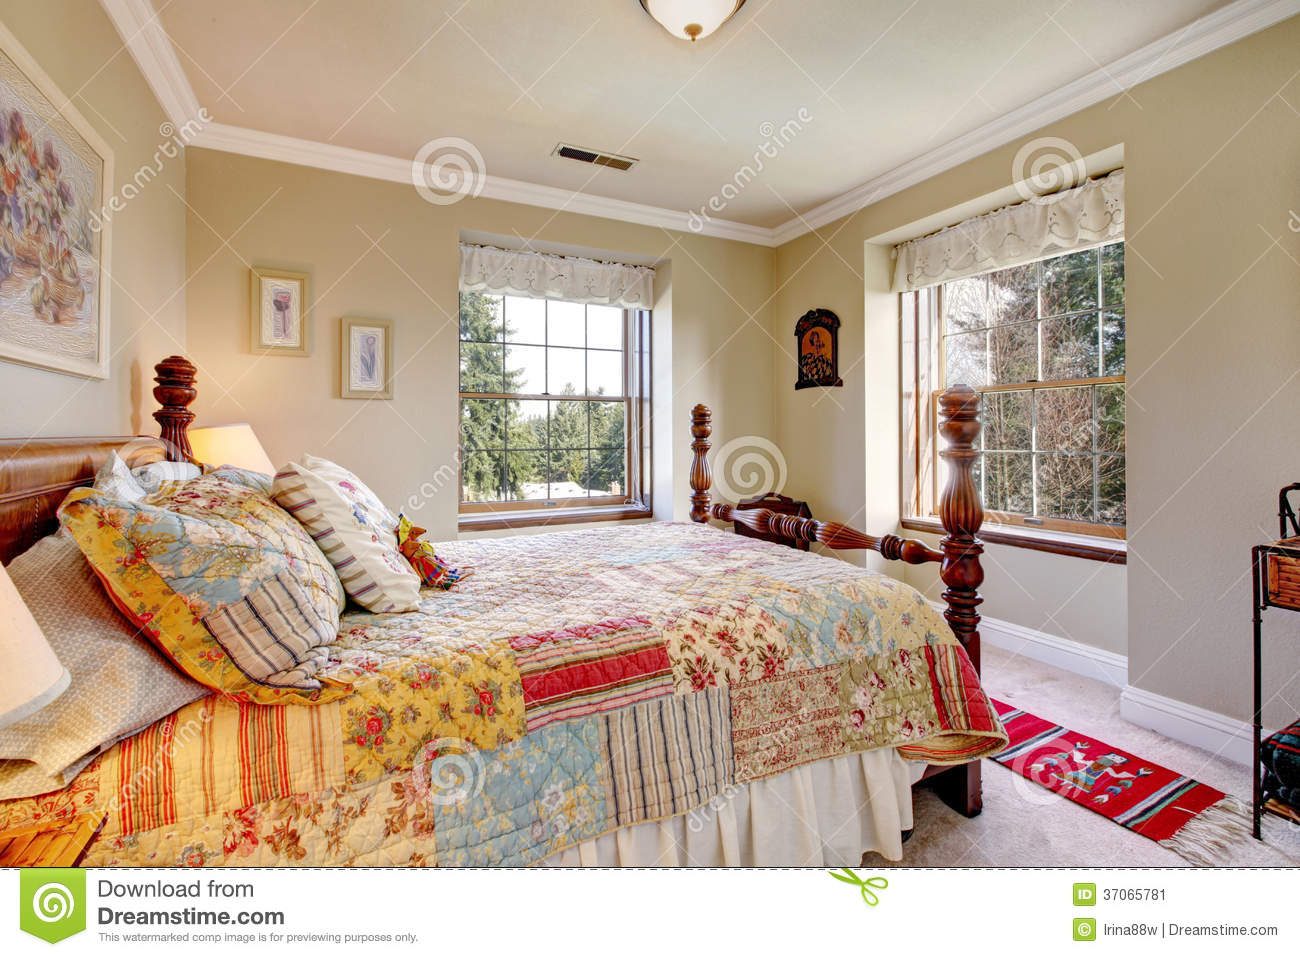 warm colors bedroom with an old fashioned bed stock image image 37065781. Black Bedroom Furniture Sets. Home Design Ideas